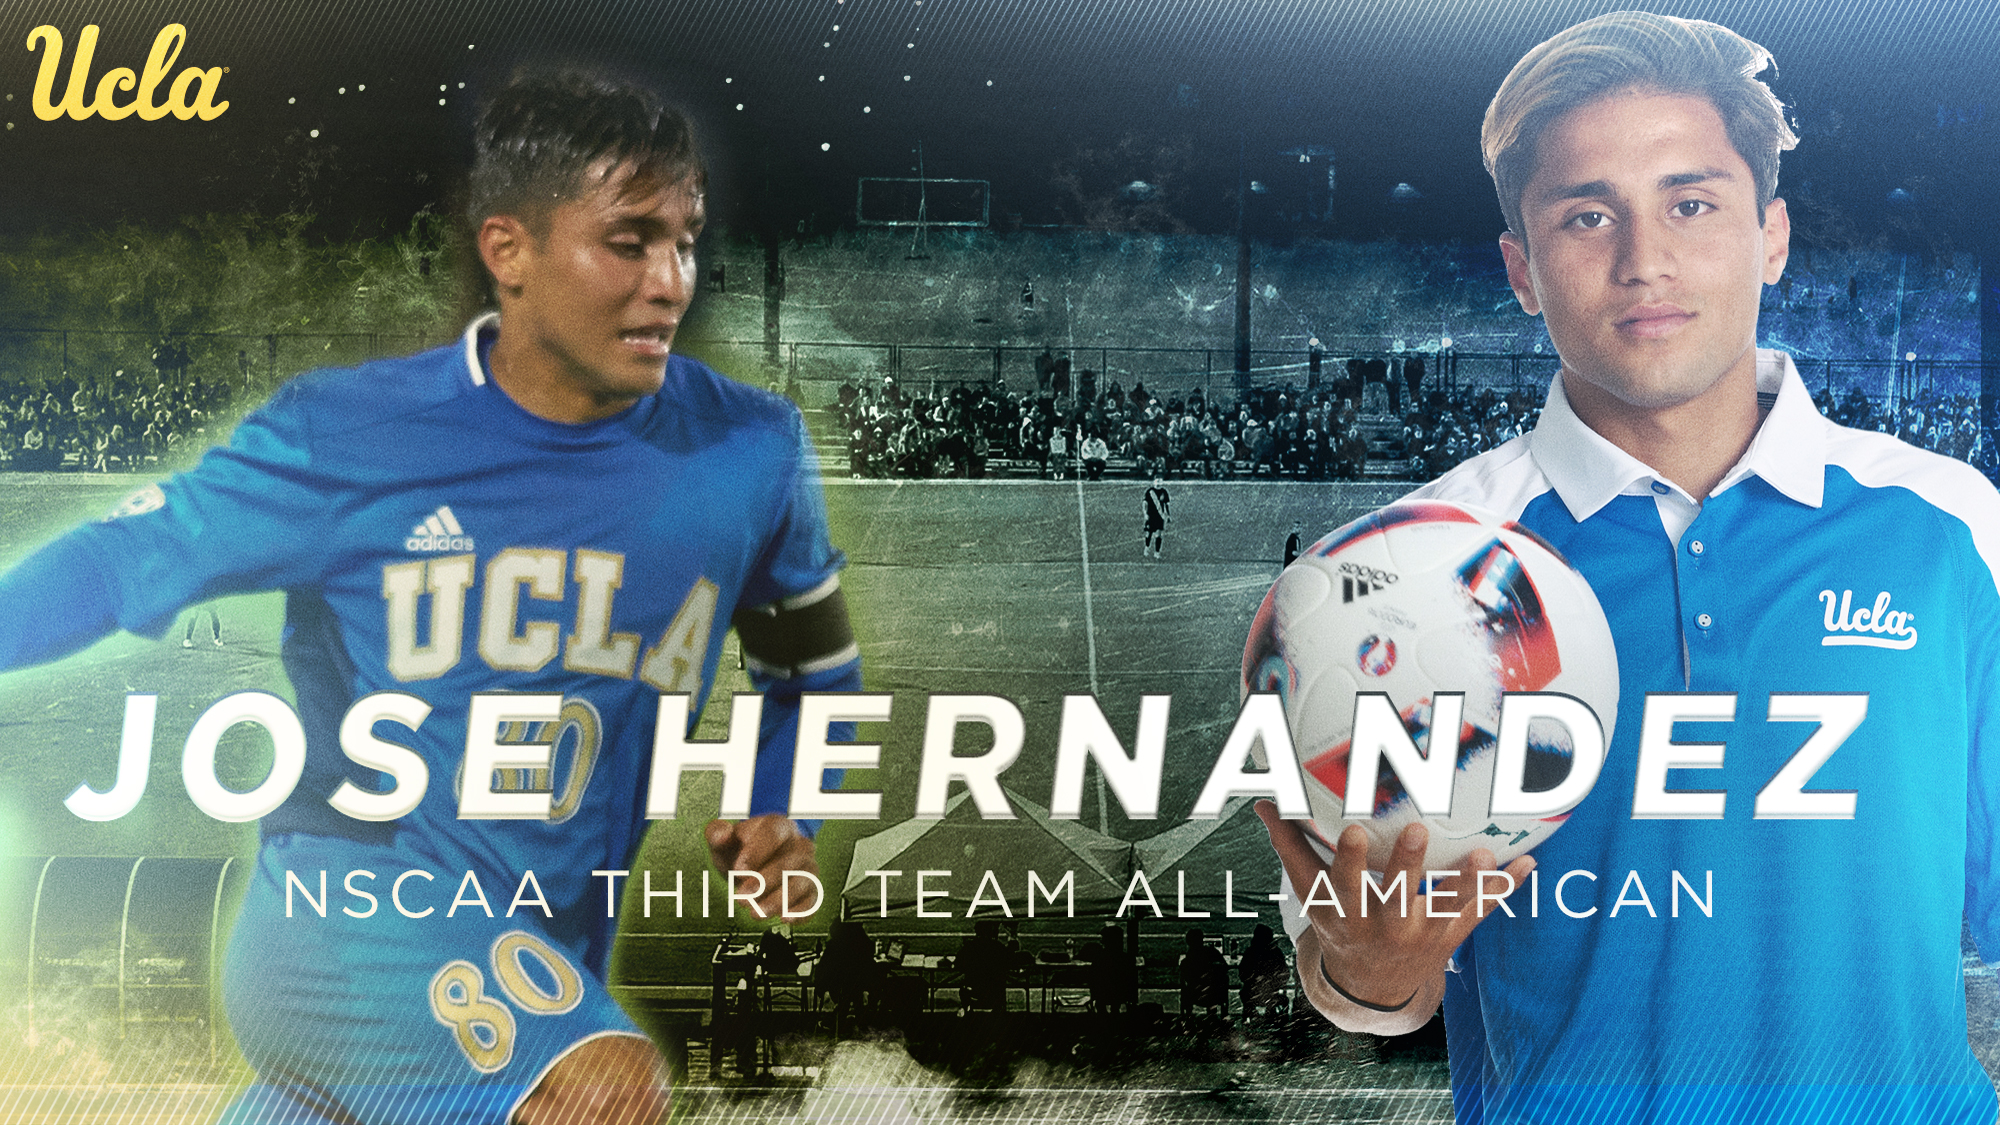 hernandez named nscaa all american uclabruins com ucla athletics